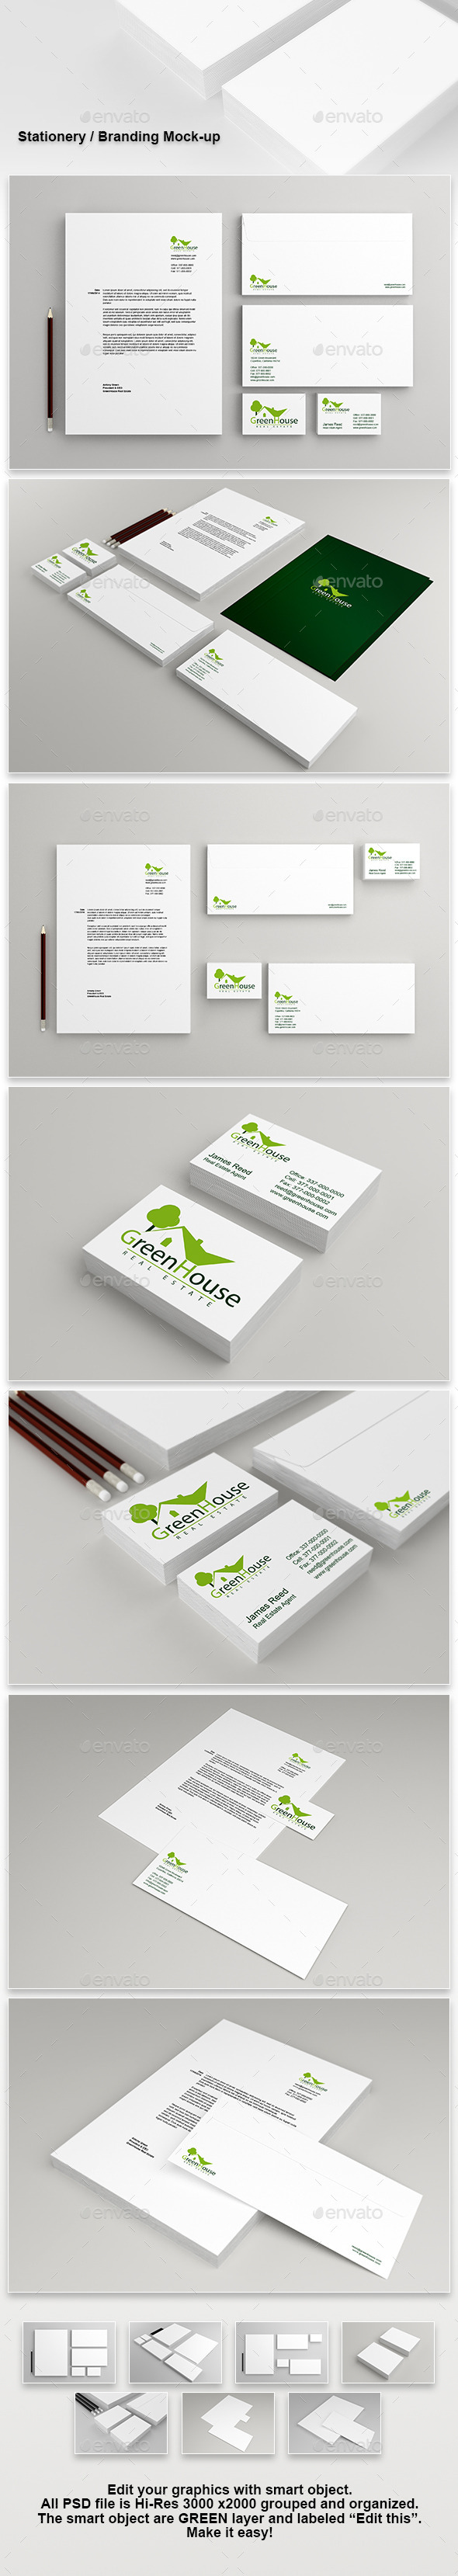 GraphicRiver Stationery Branding Mock-Up 8932310